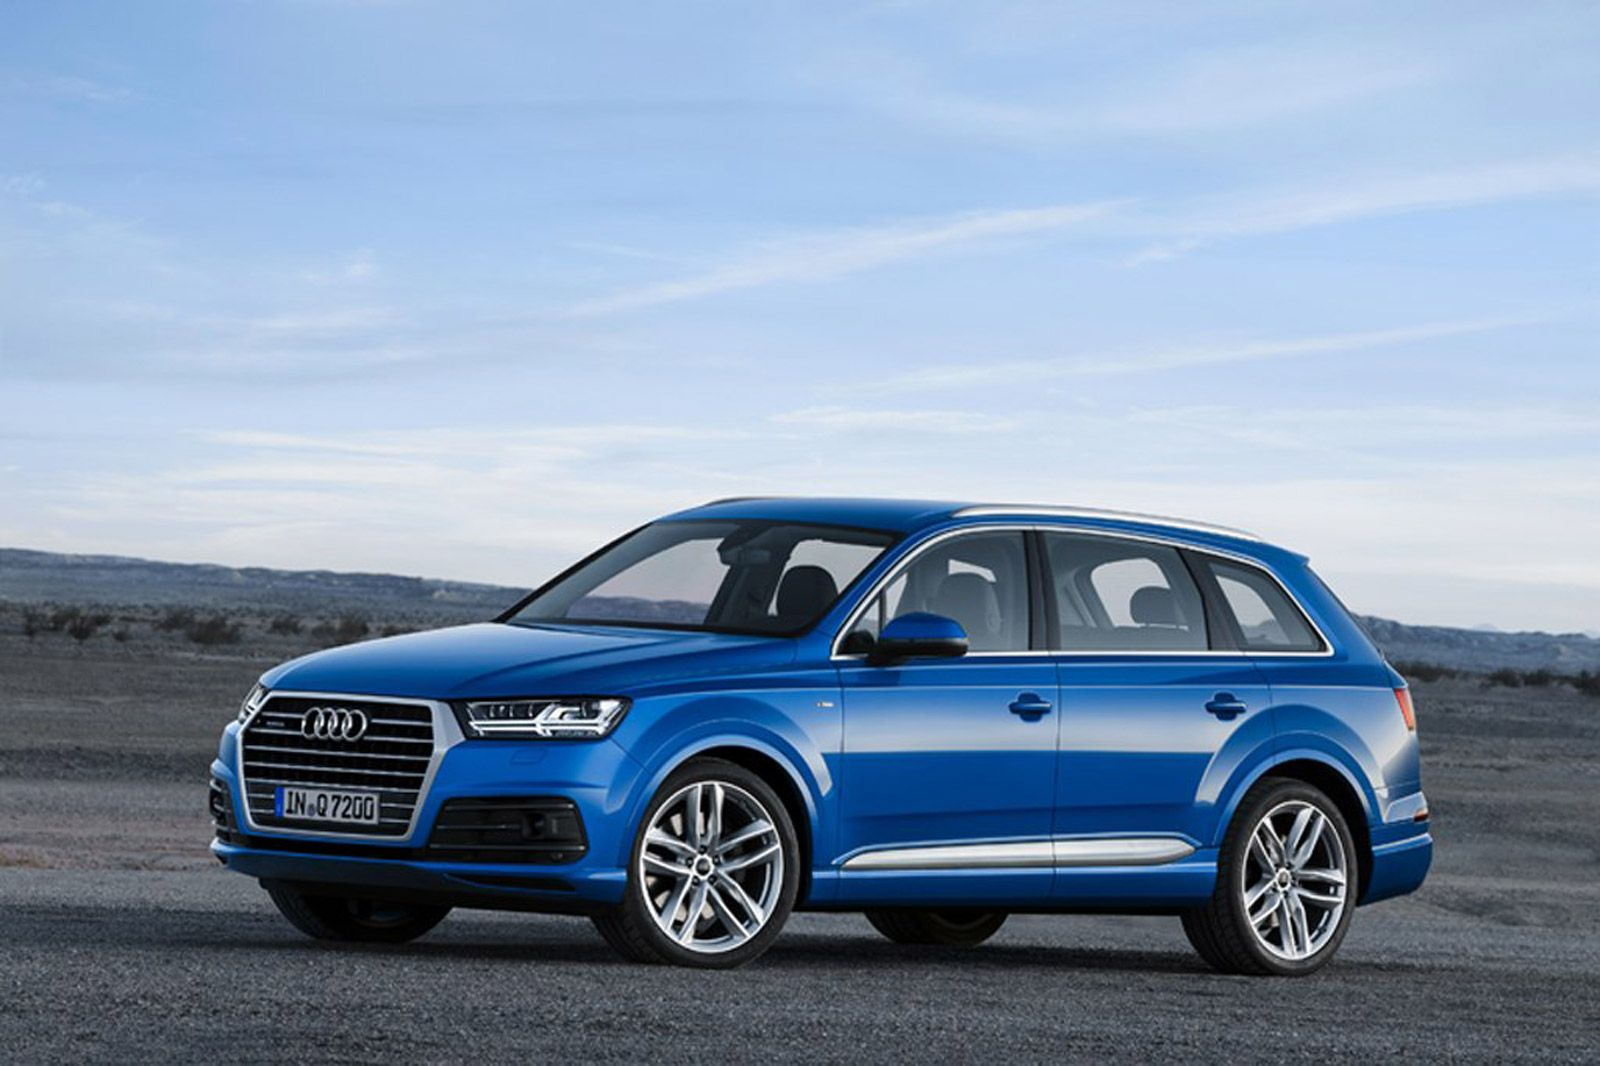 India-bound new Audi Q7 images surface